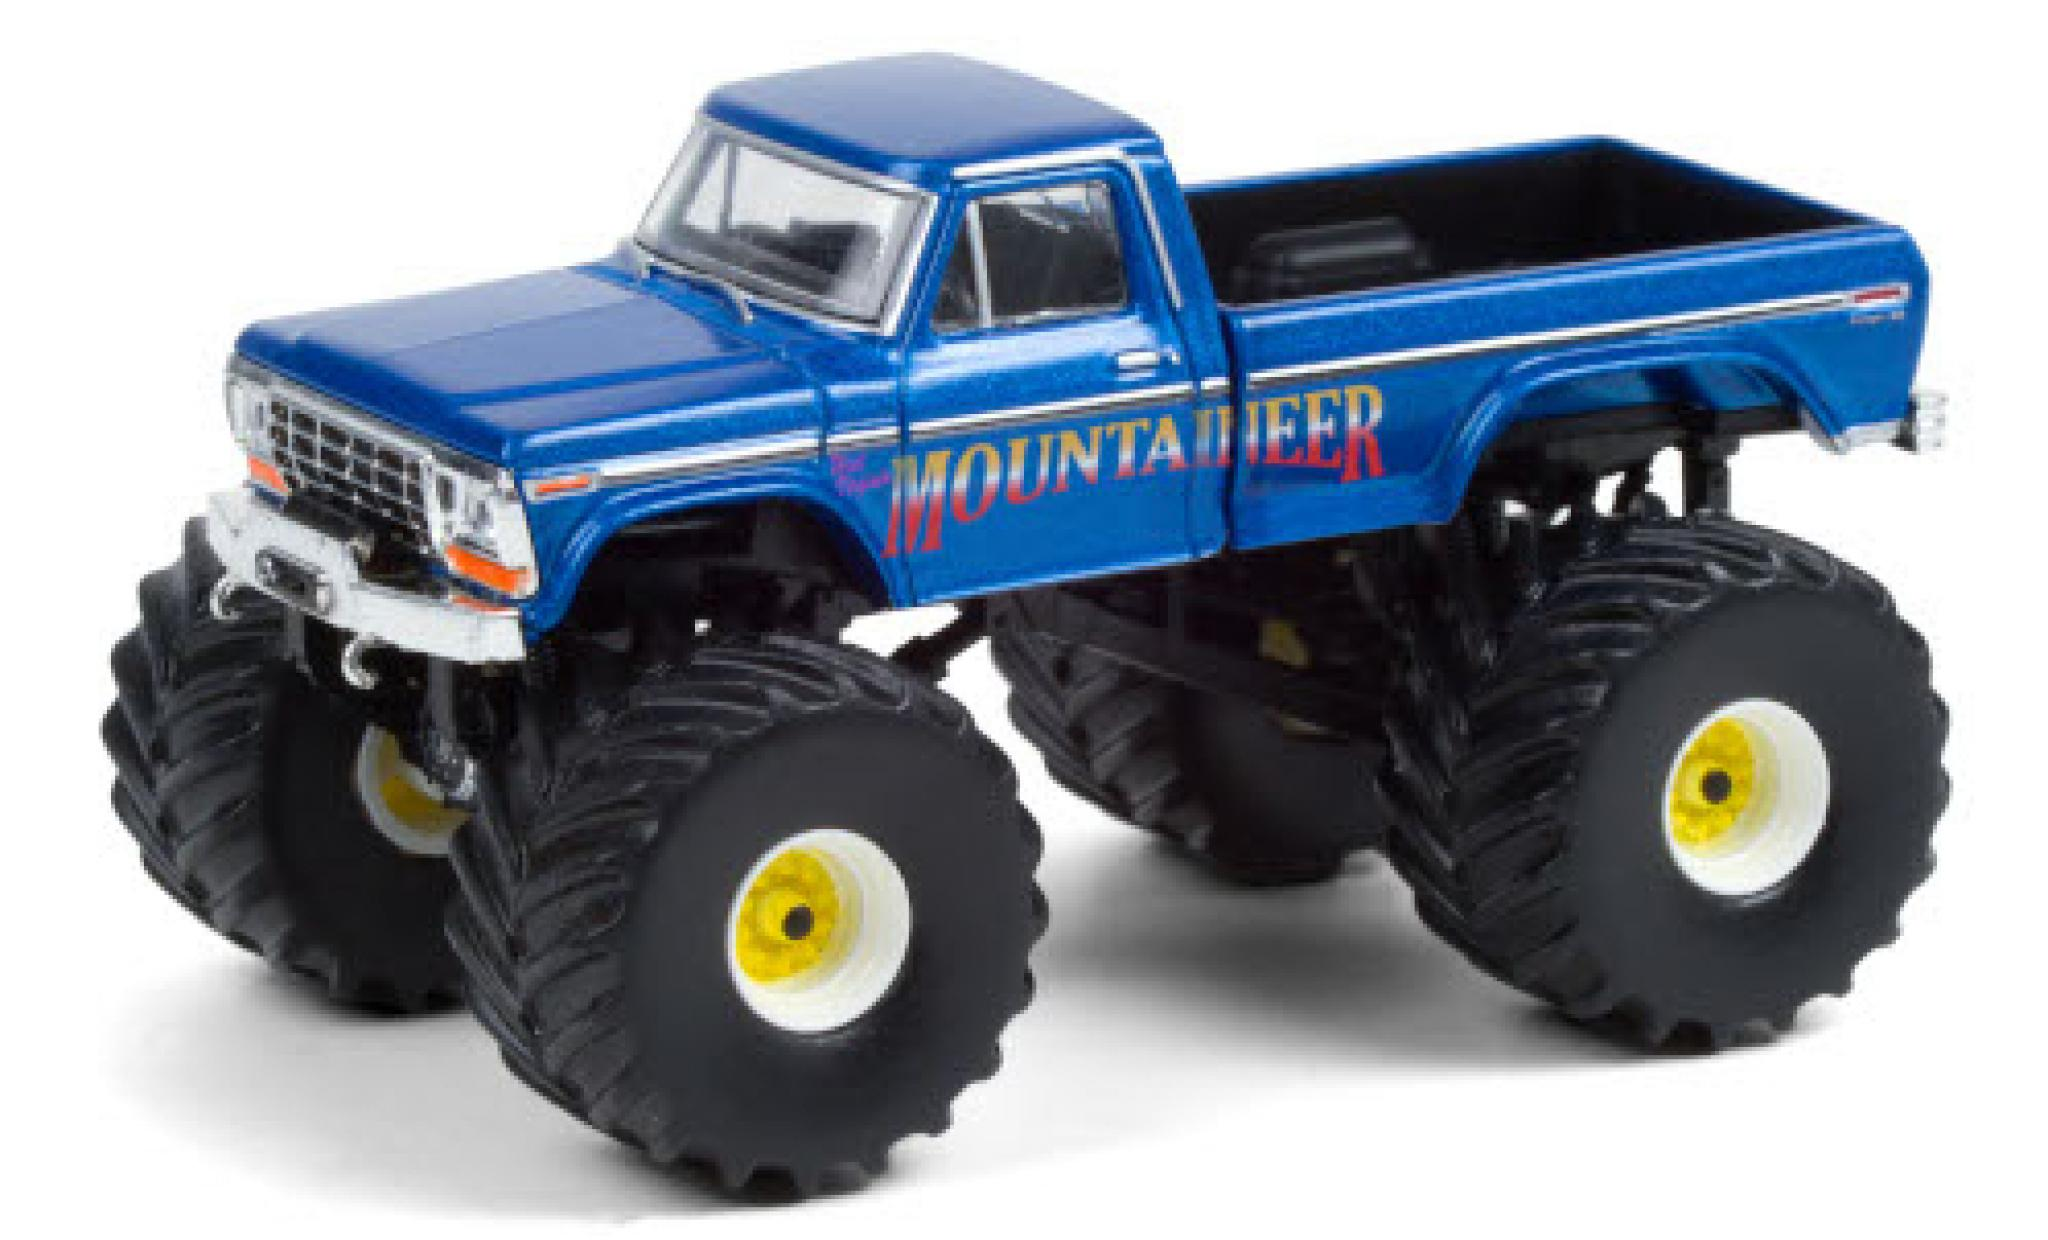 Ford F-250 1/64 Greenlight Monster Truck West Virginia Mountaineer 1979